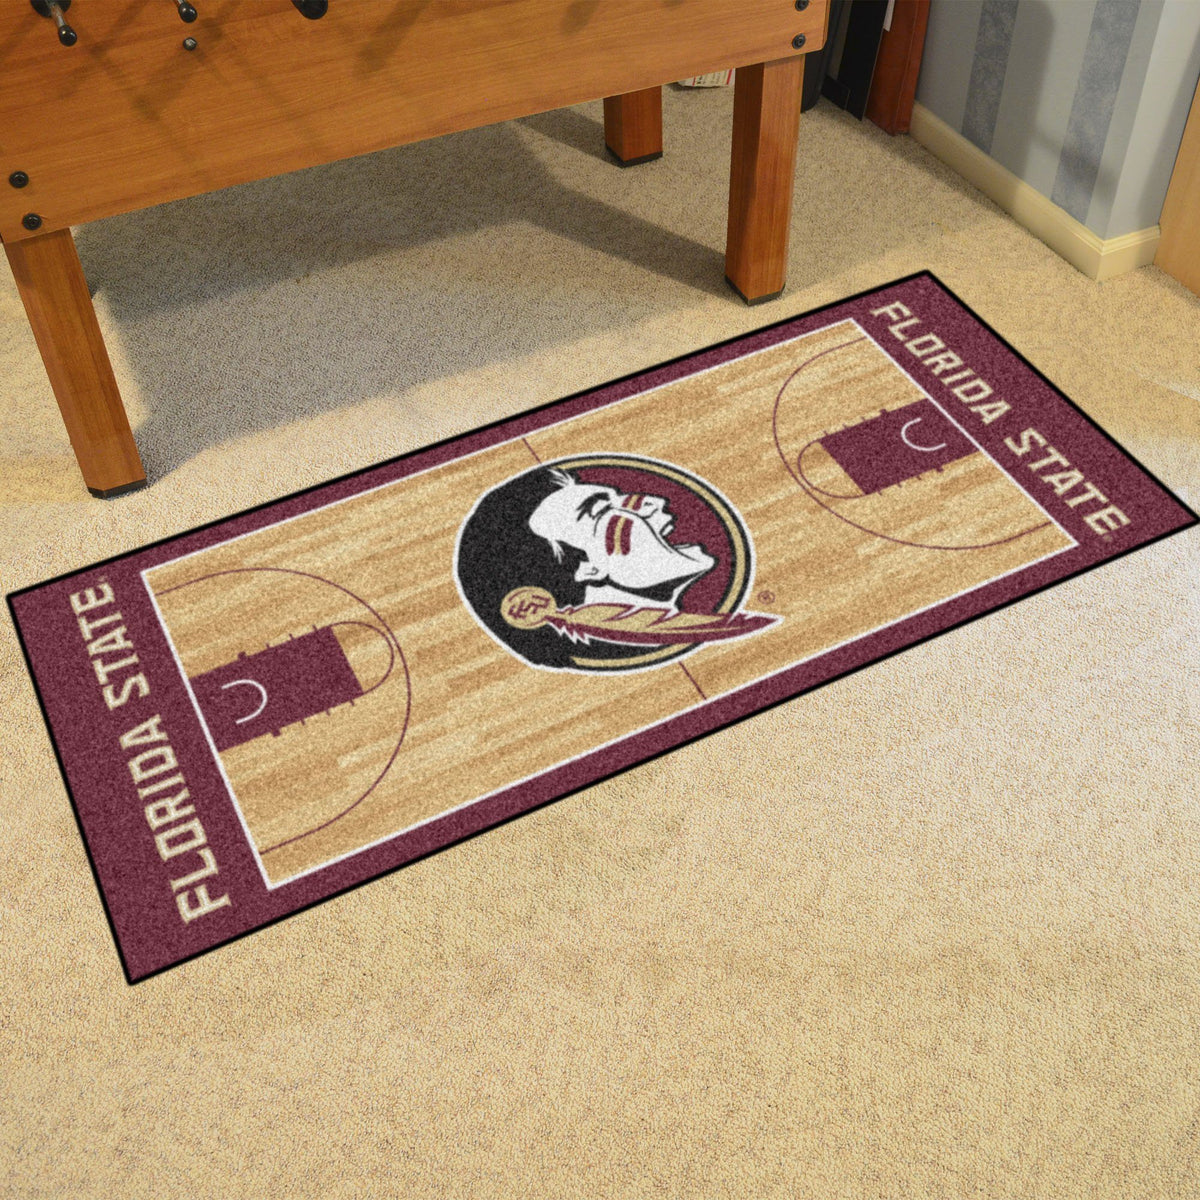 Collegiate - NCAA Basketball Runner Collegiate Mats, Rectangular Mats, NCAA Basketball Runner, Collegiate, Home Fan Mats Florida State